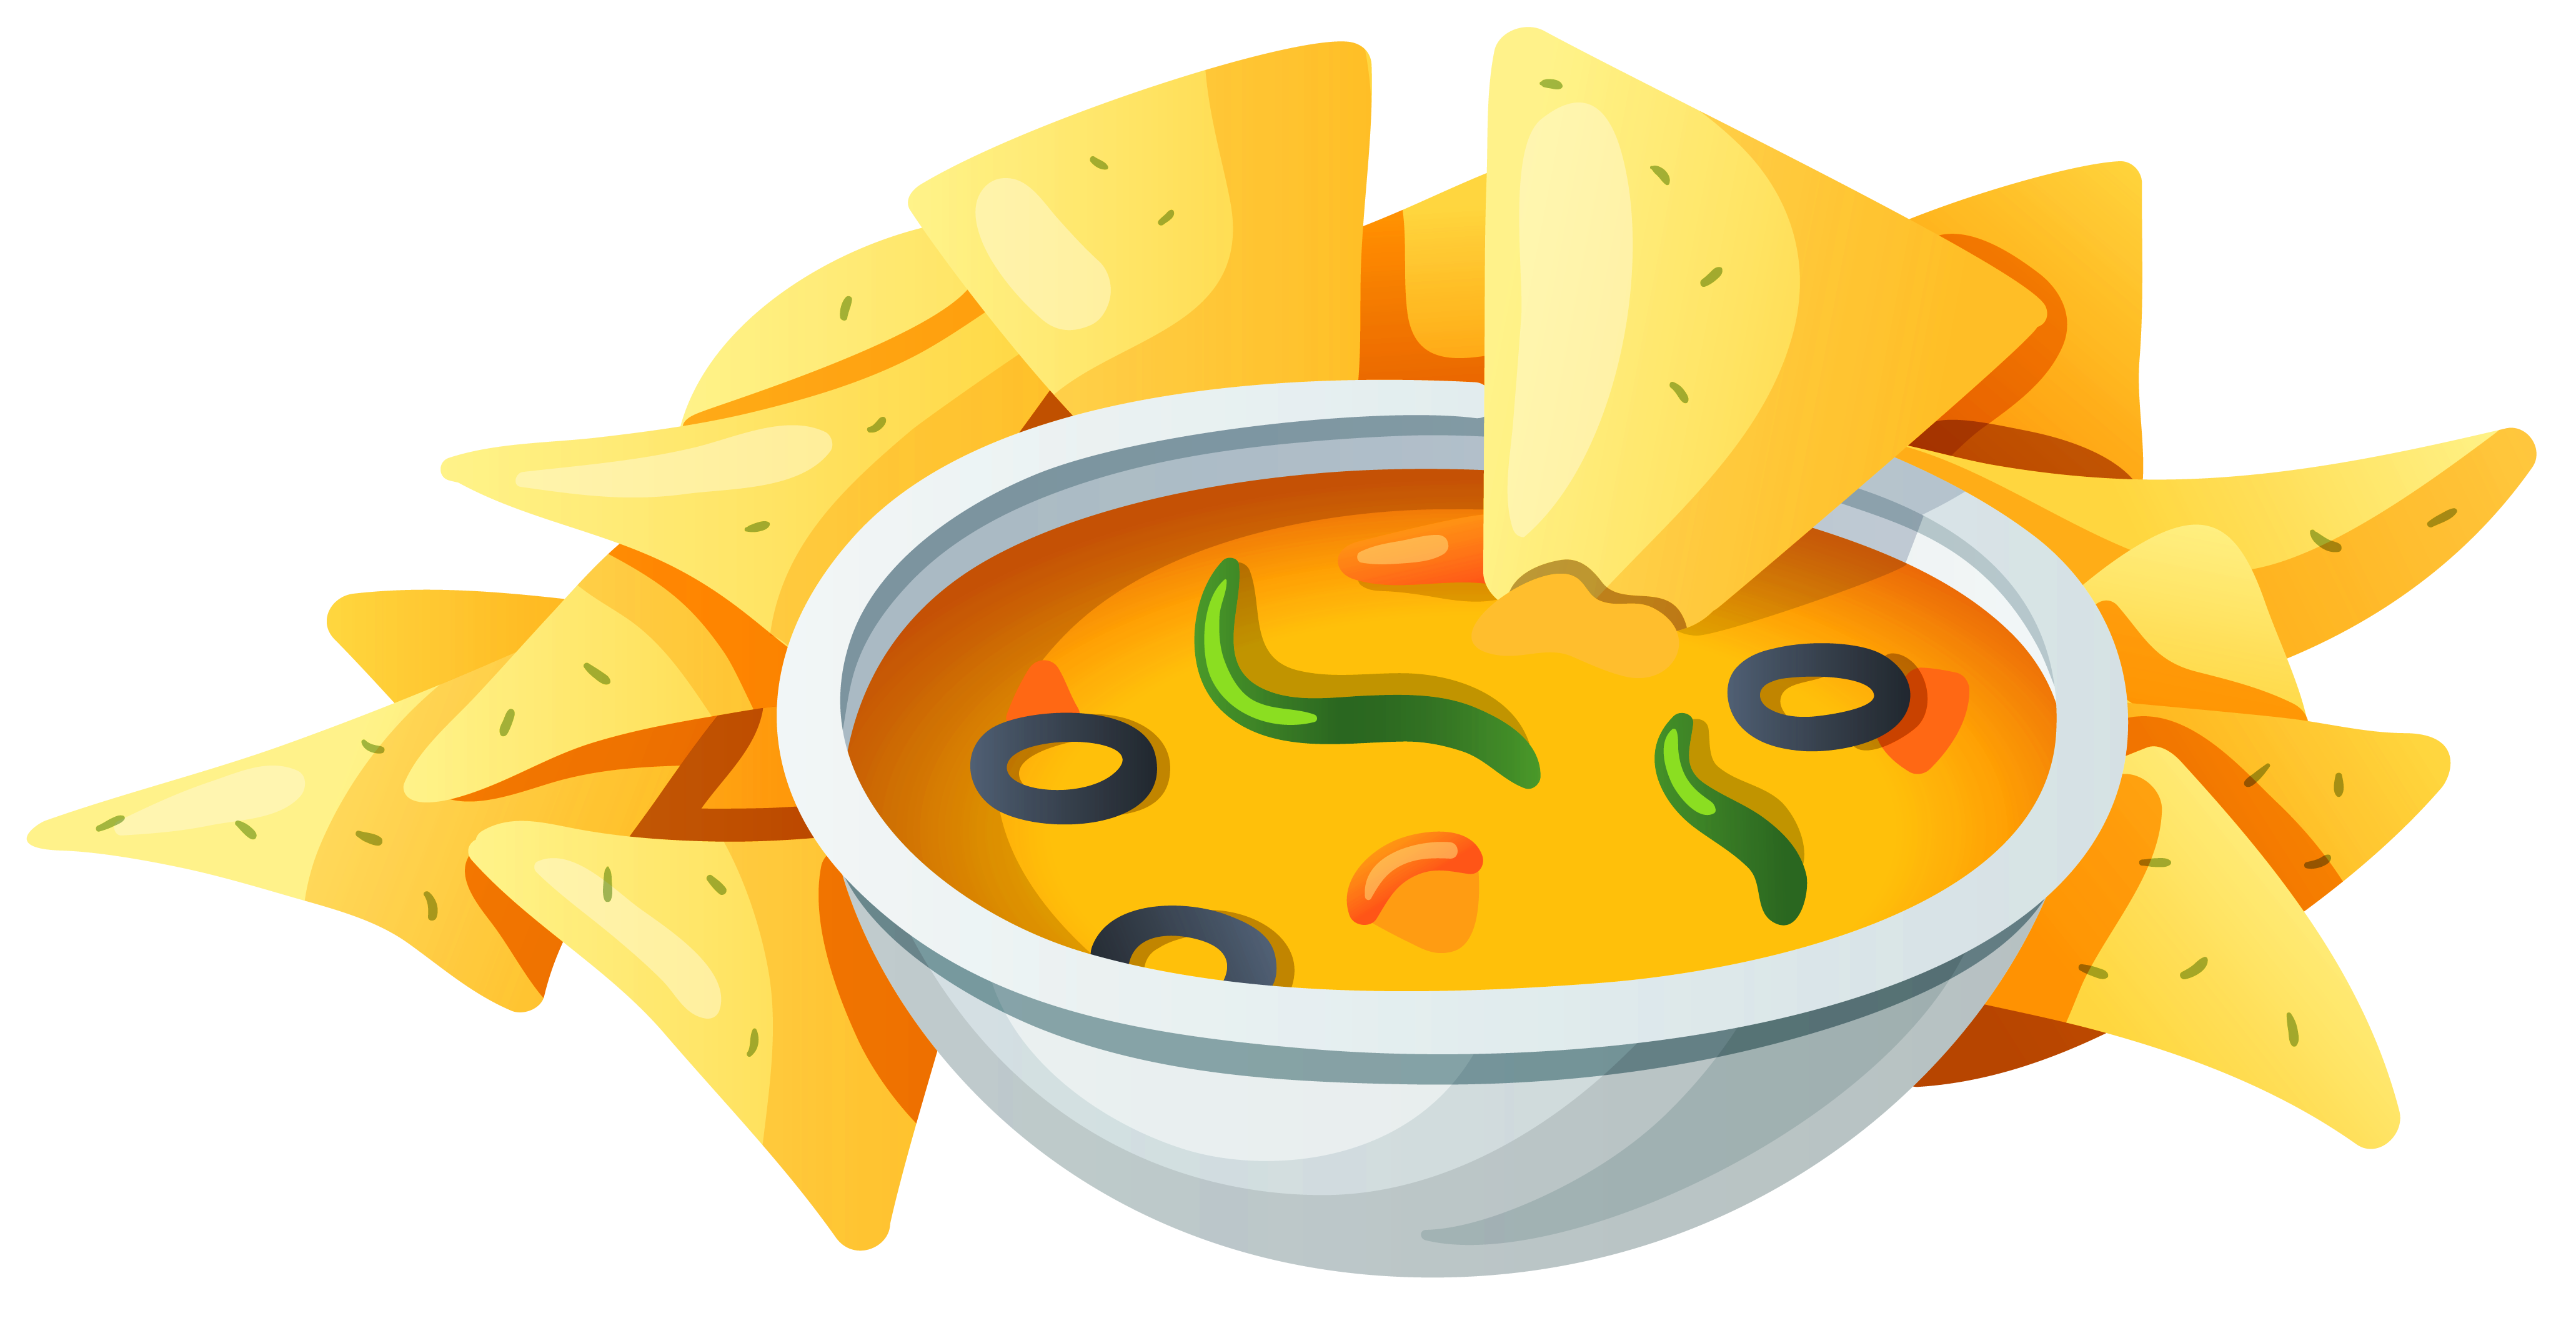 Dinner clipart cute. Mexican soup png image